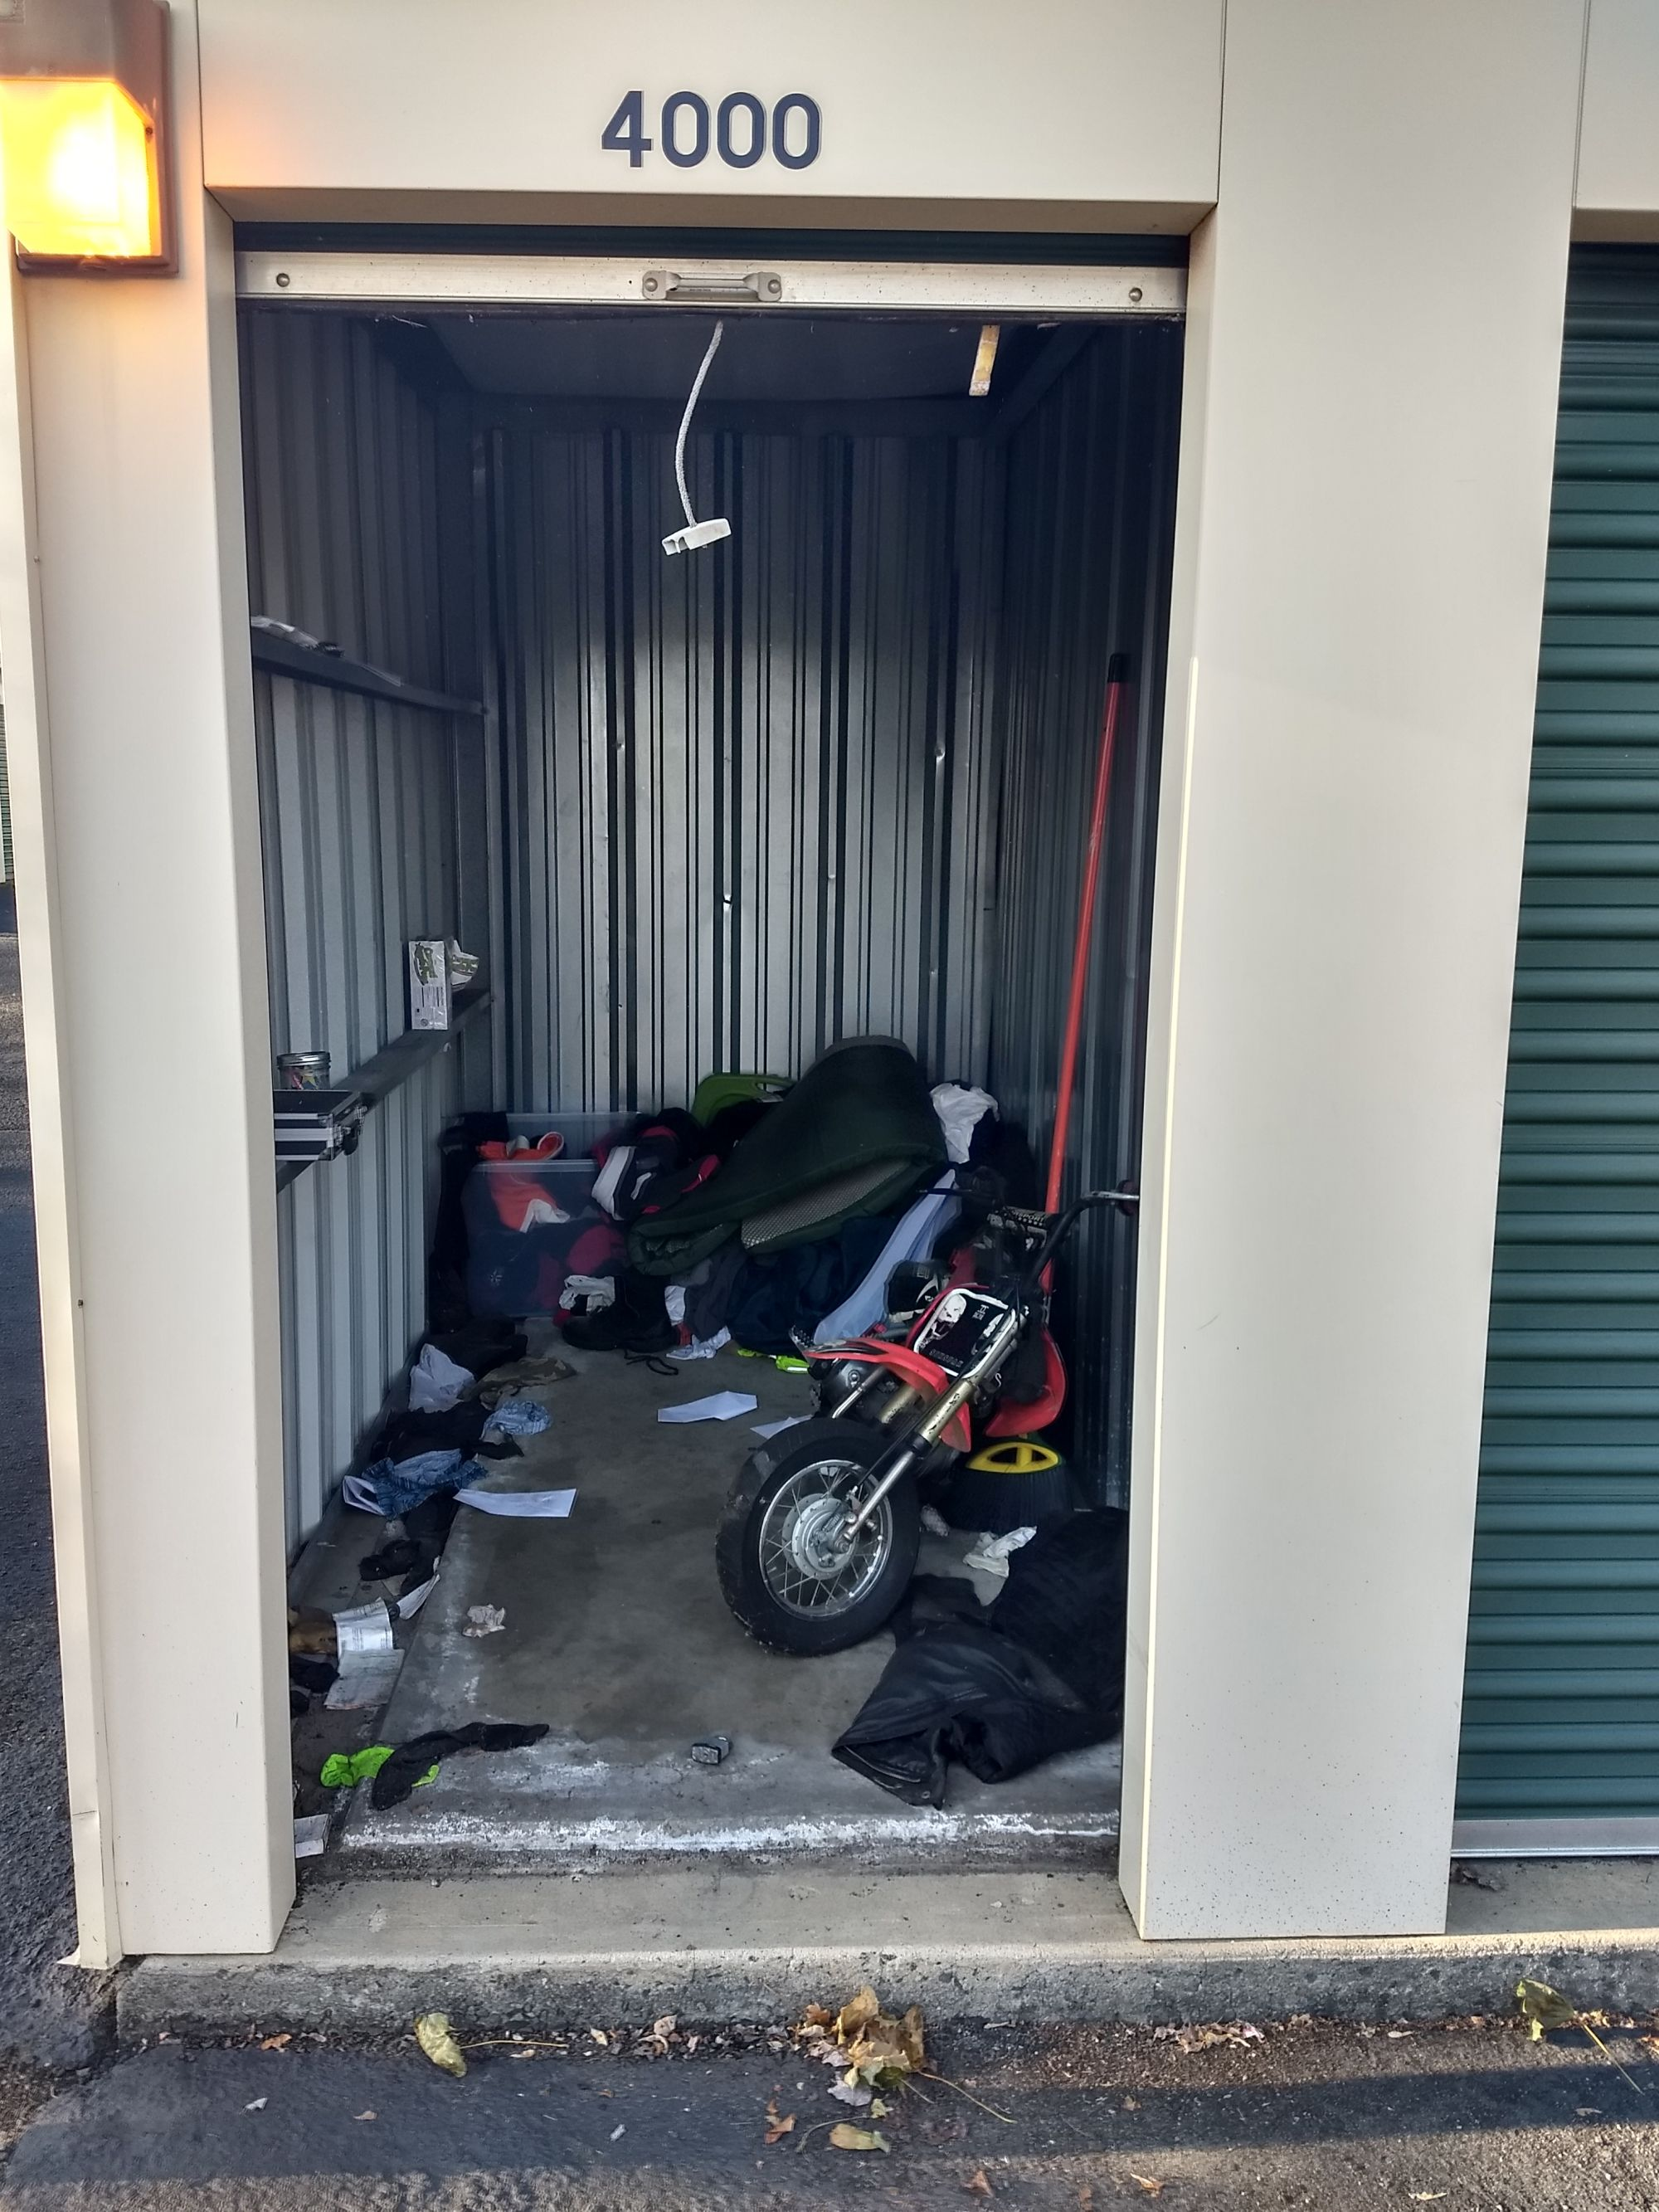 Storage unit auction 519837 freehold nj for Motor vehicle nj freehold